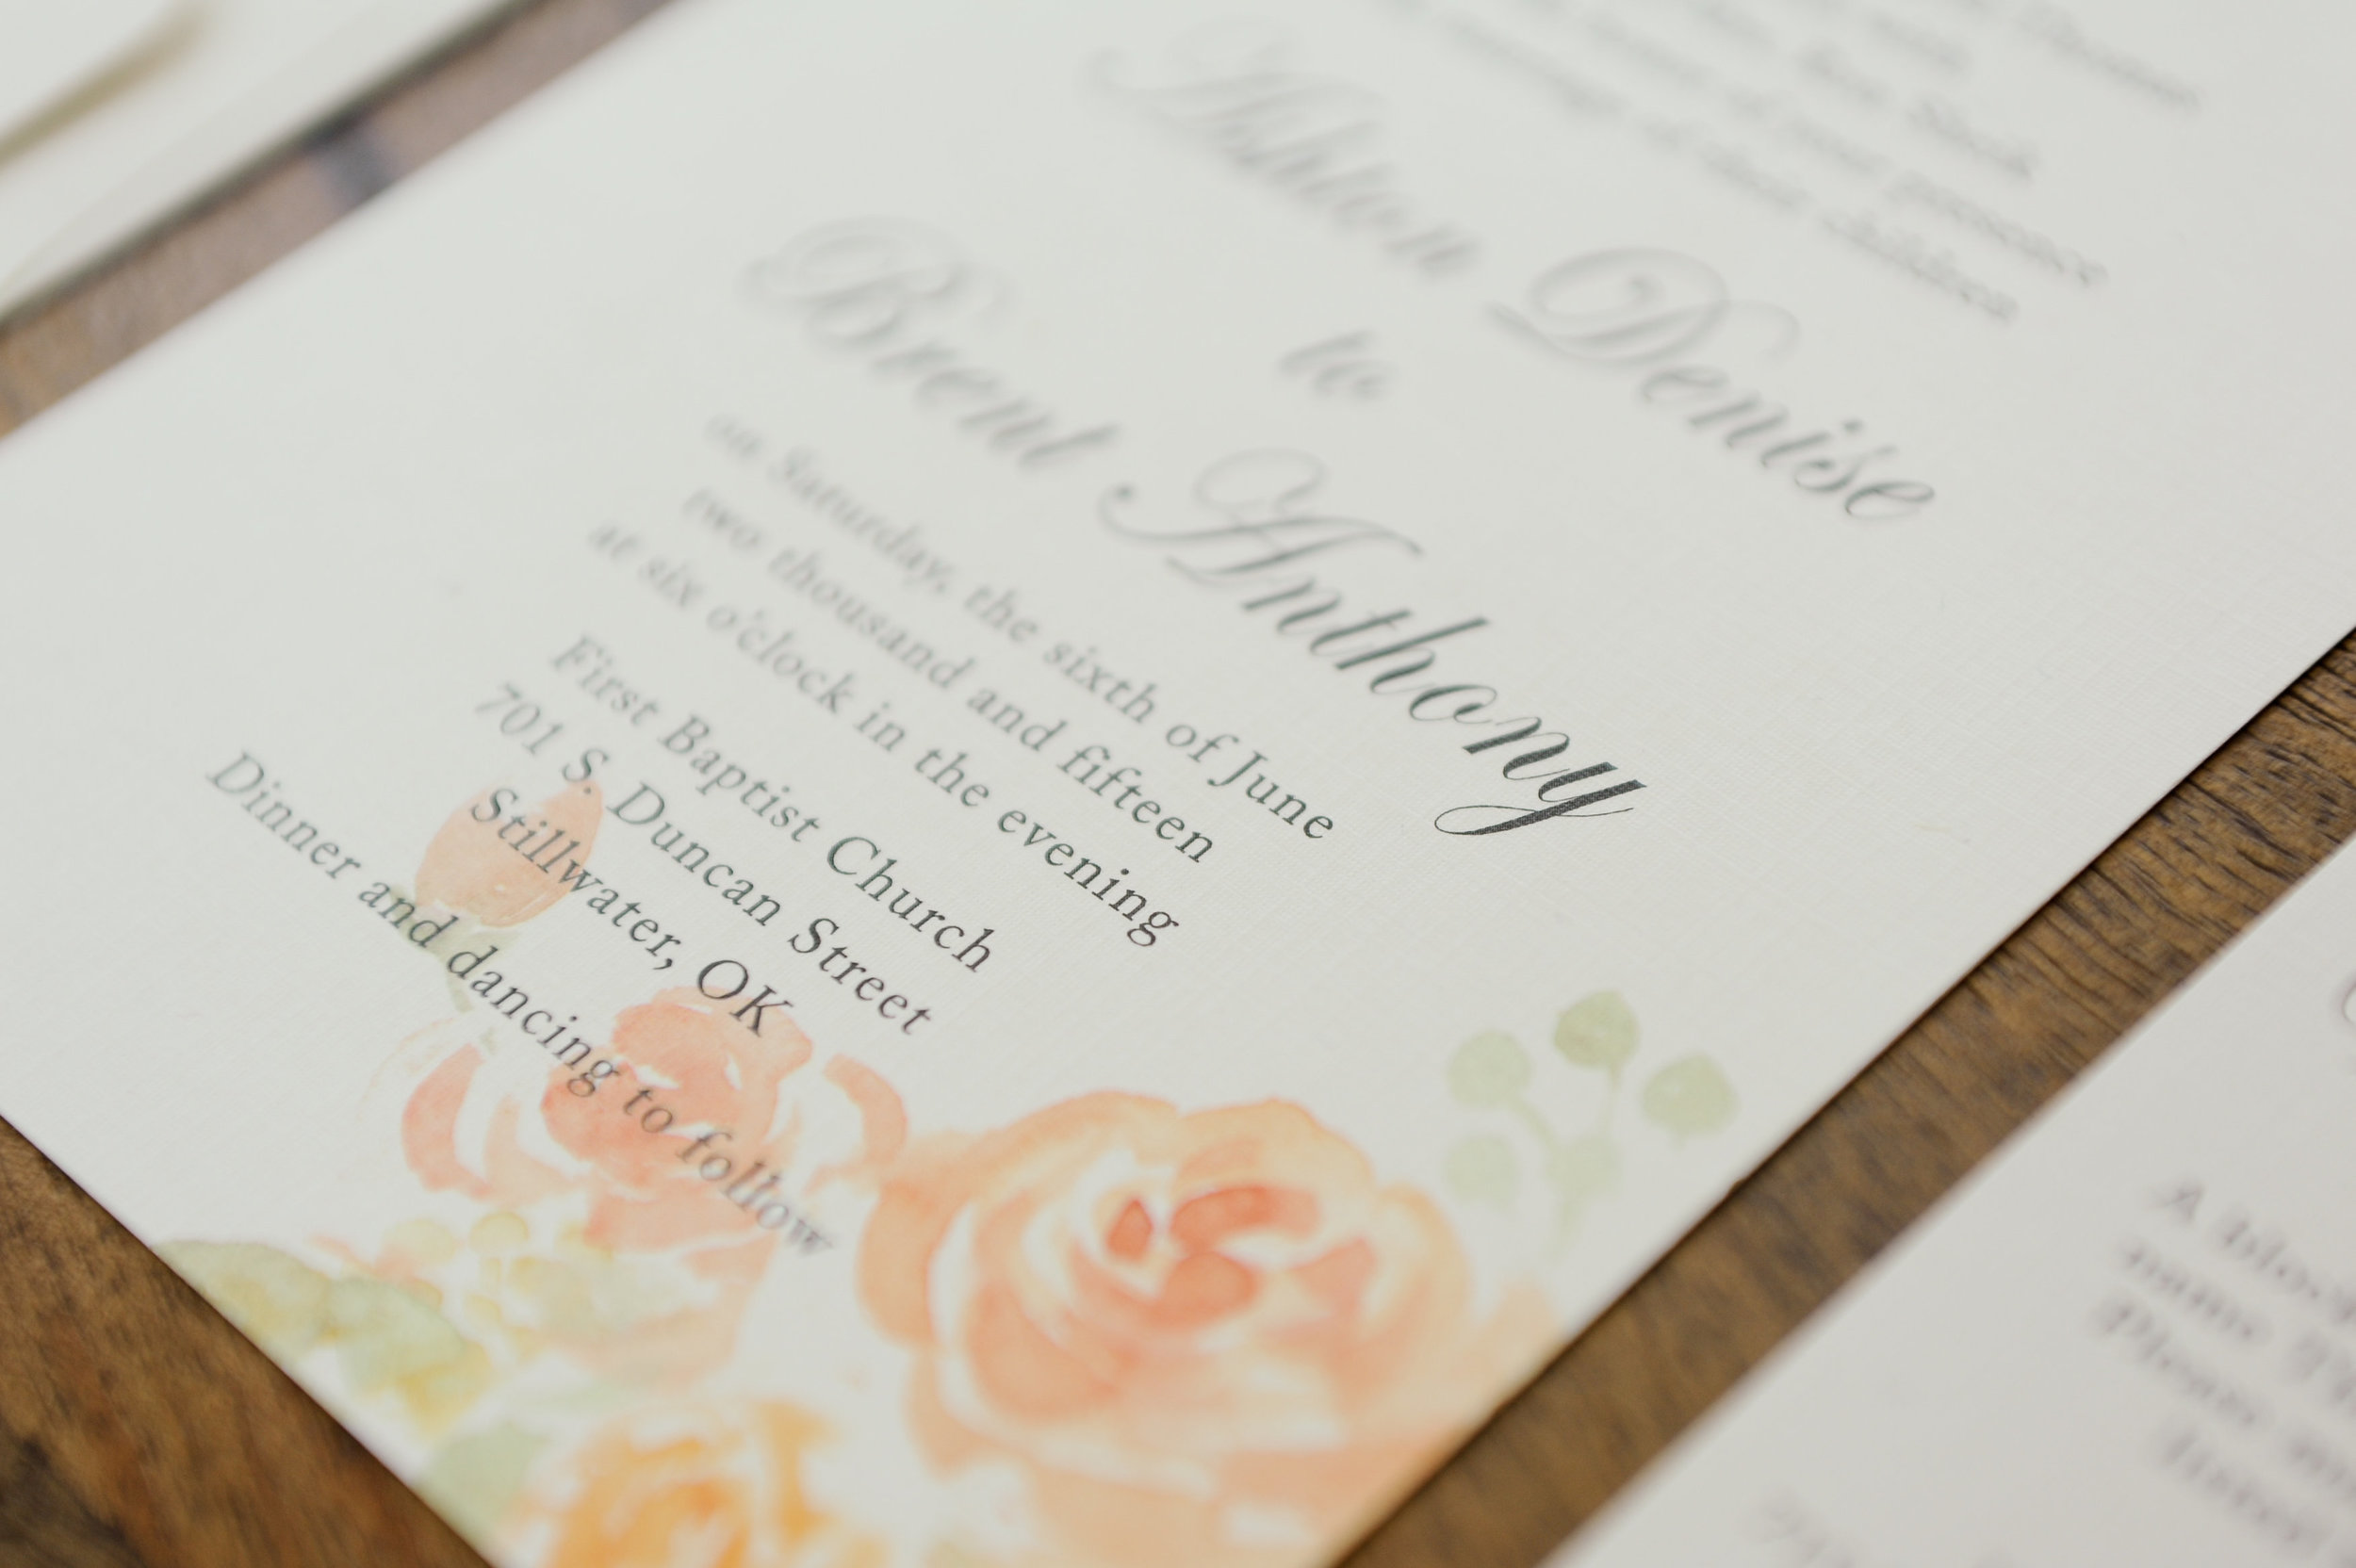 My head was spinning with images of soft floral designs for their invitation suite.